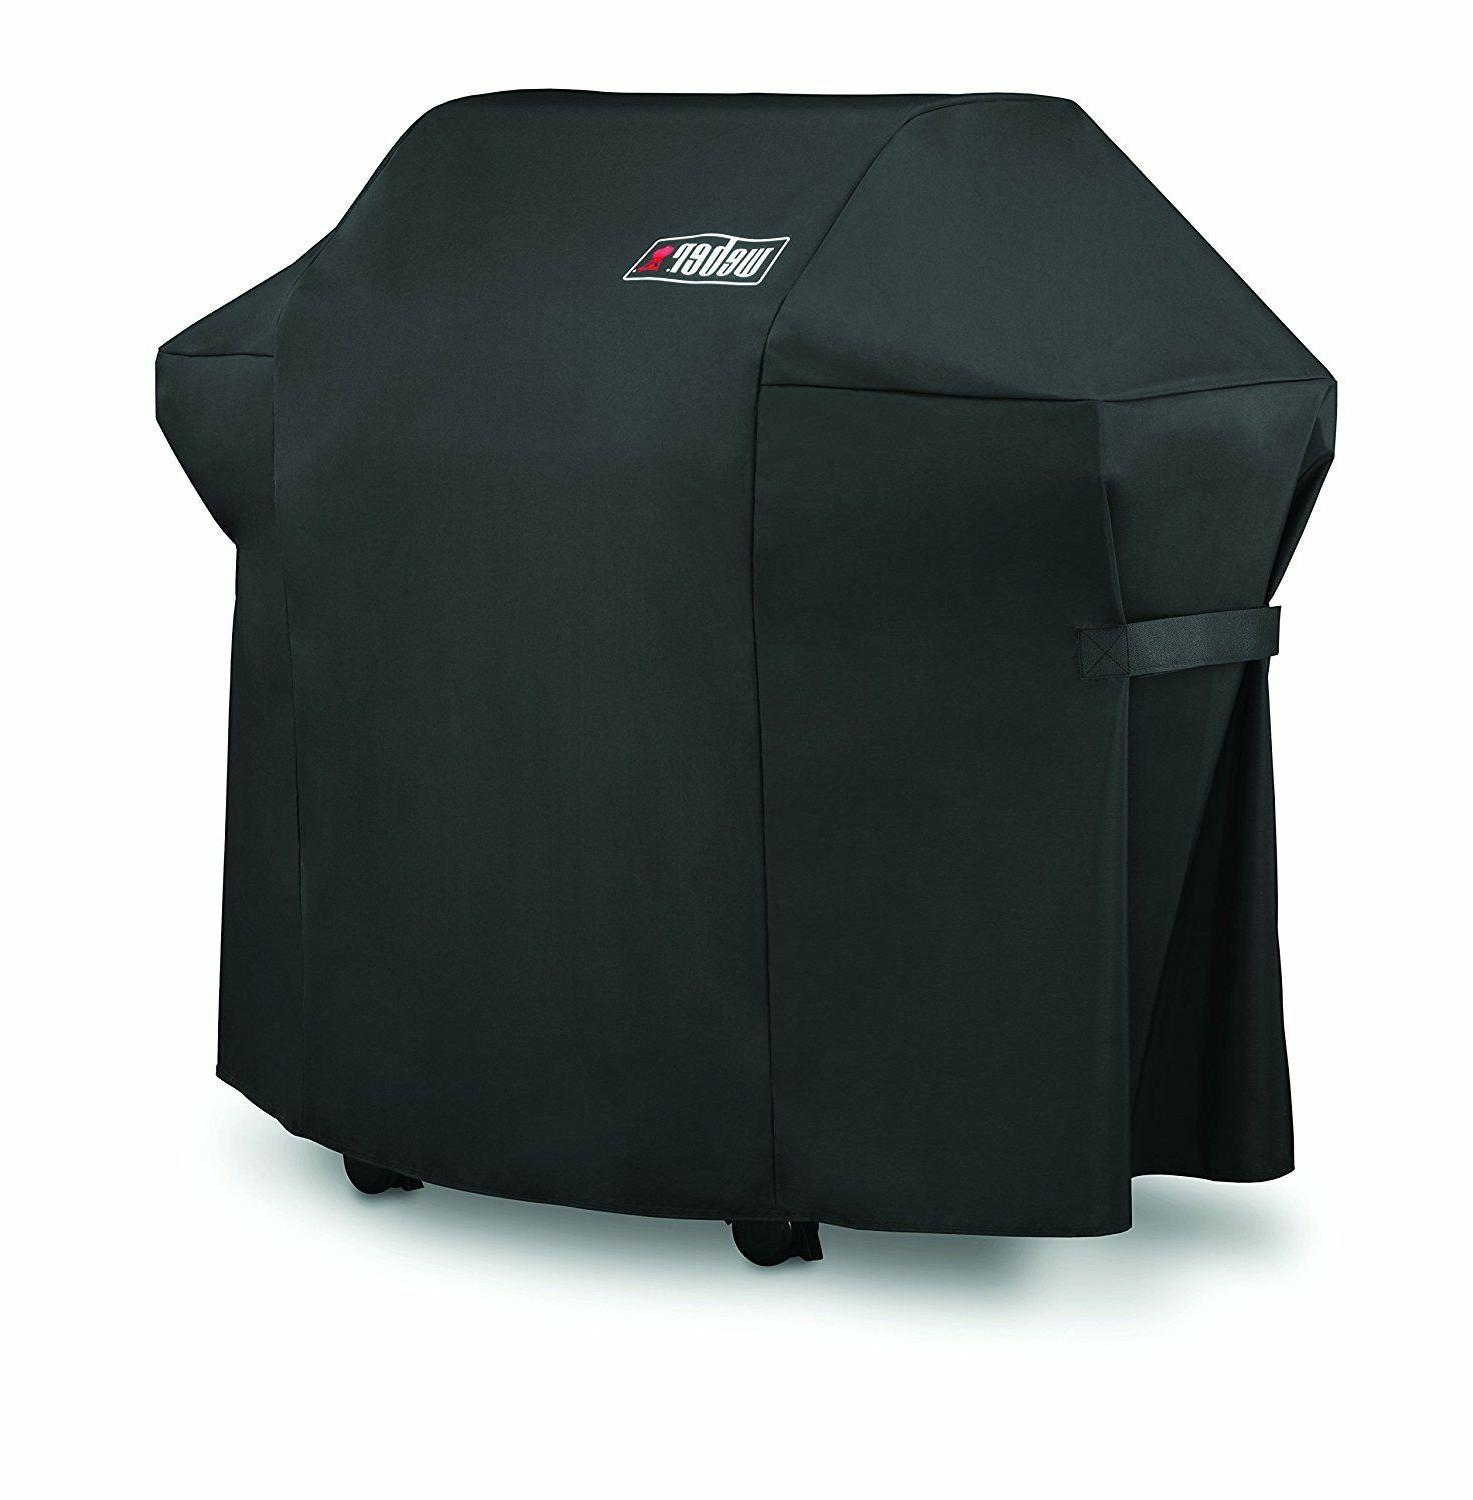 Weber Grill Black Spirit 220 and Series Gas Grill